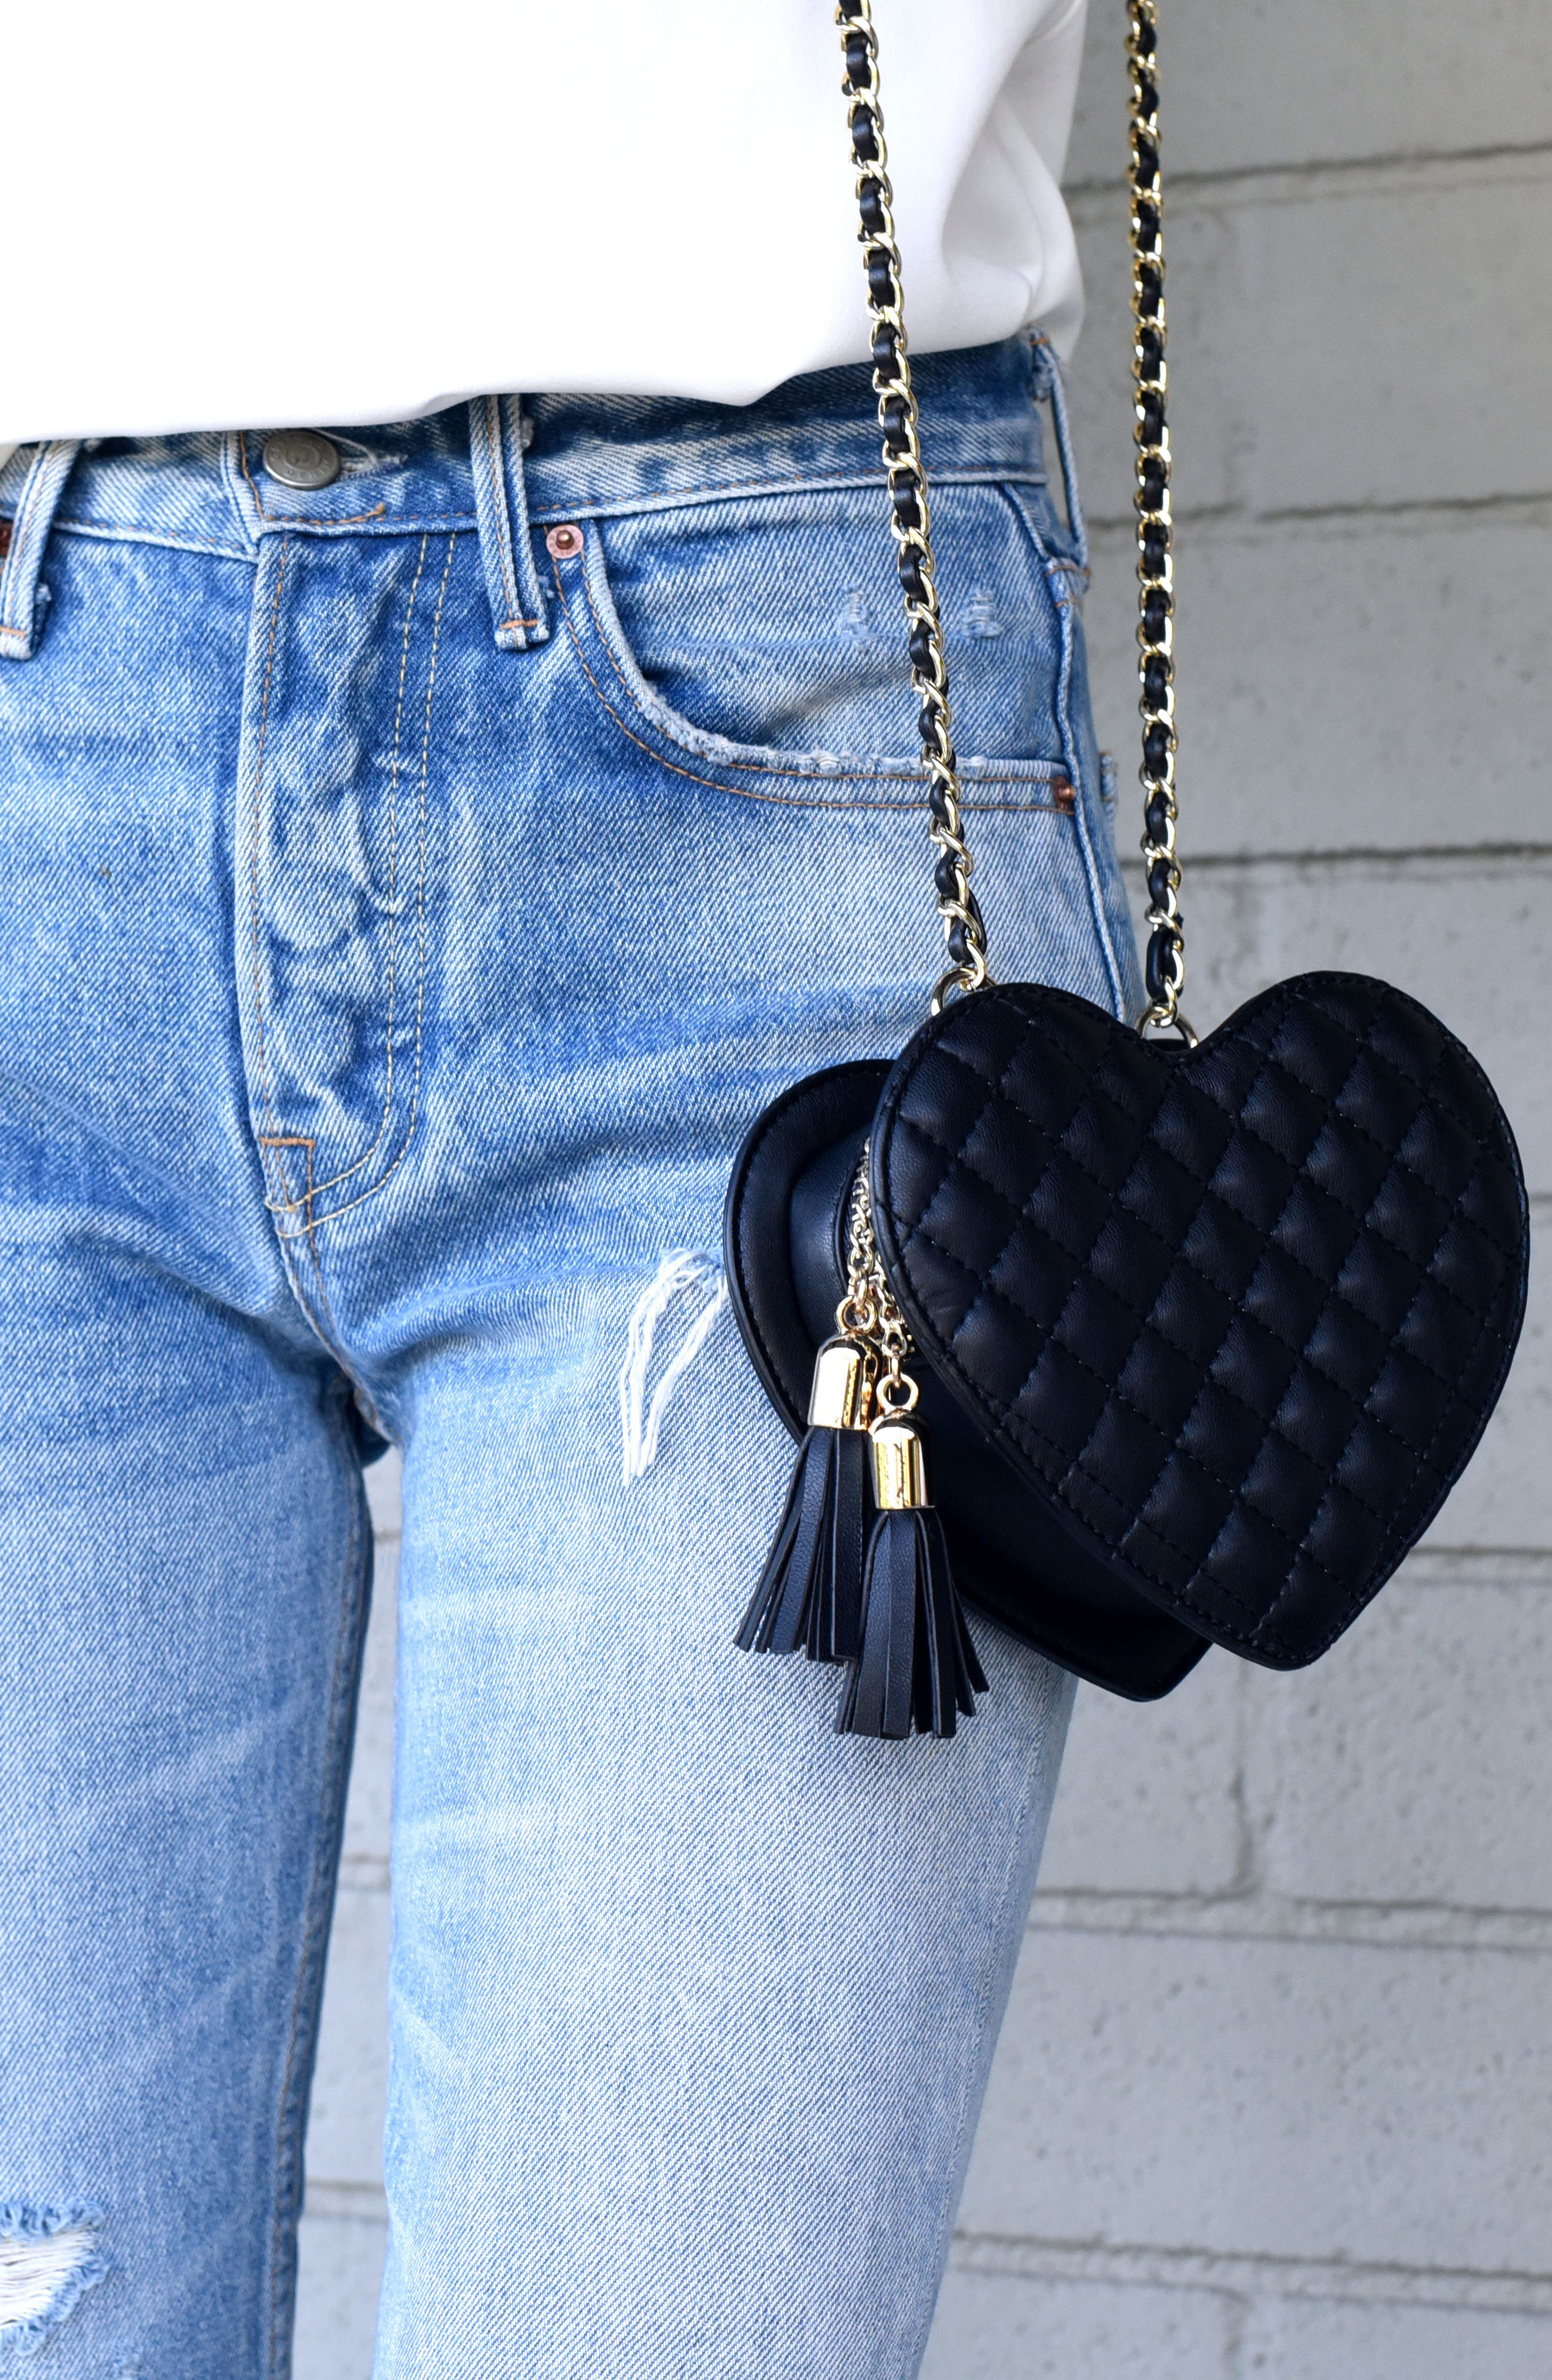 Mali + Lili Quilted Heart Vegan Leather Crossbody Bag,                             Alternate thumbnail 8, color,                             BLACK